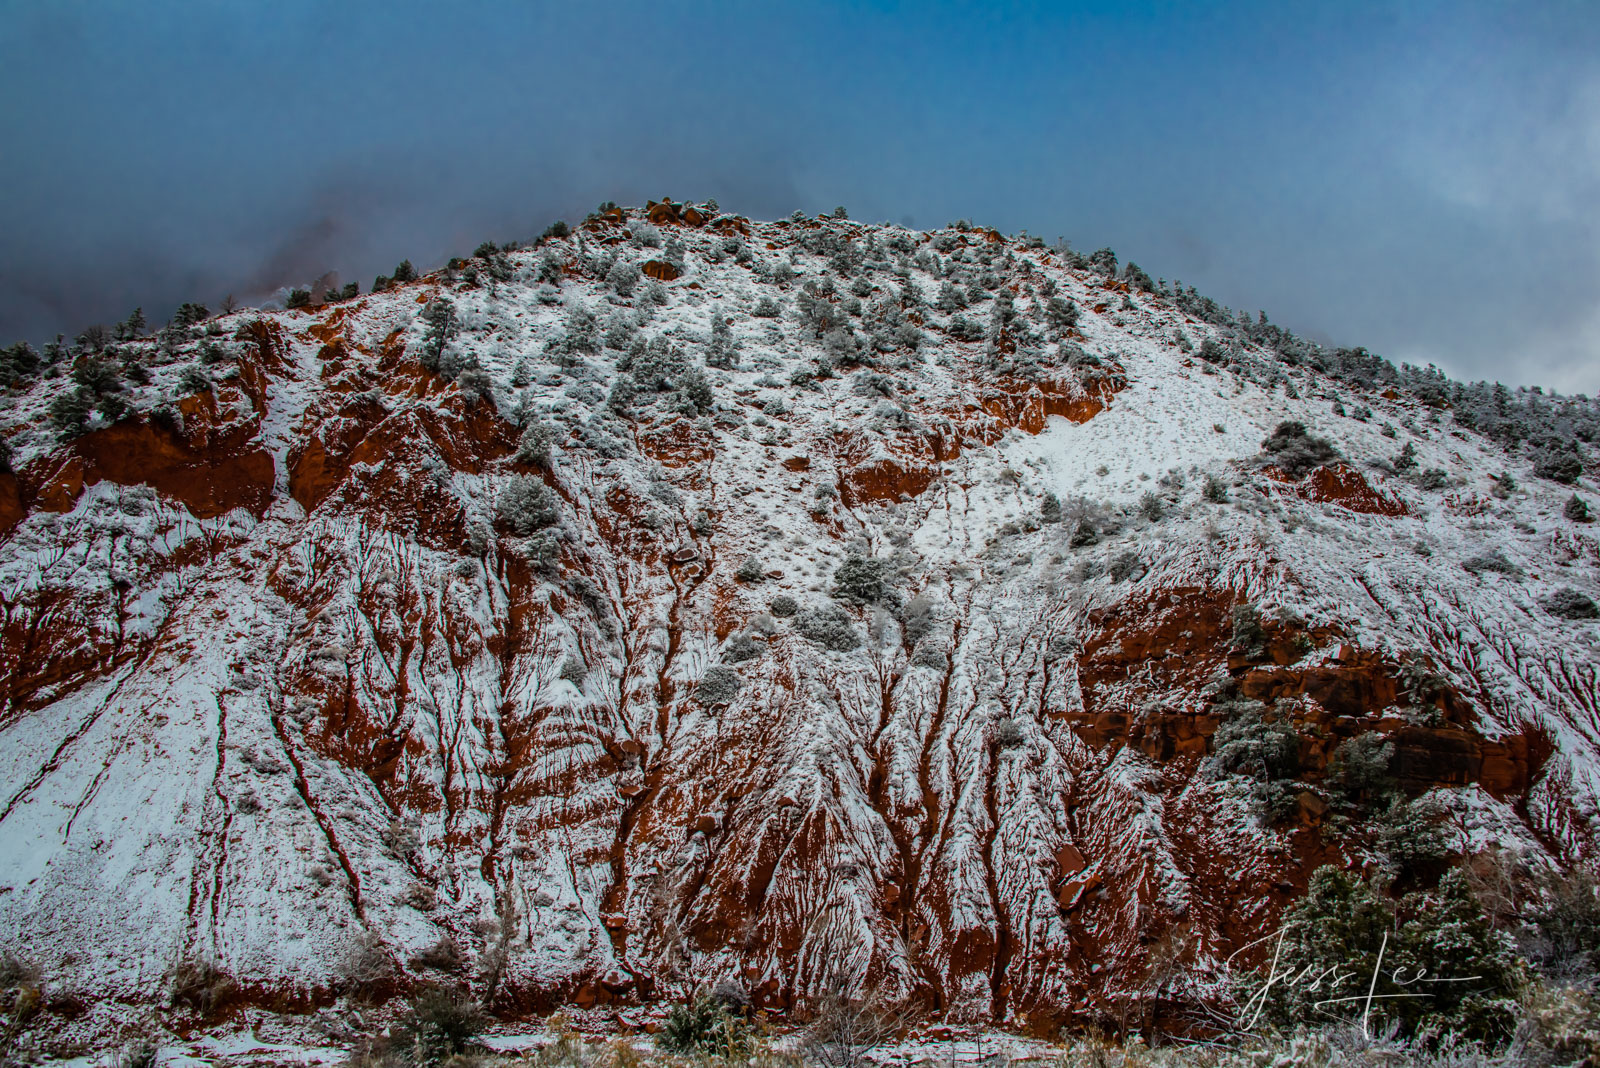 Limited Edition of 50 Exclusive high-resolution Museum Quality Fine Art Photography Prints of Red Rocks Country runoff  of  Zion...